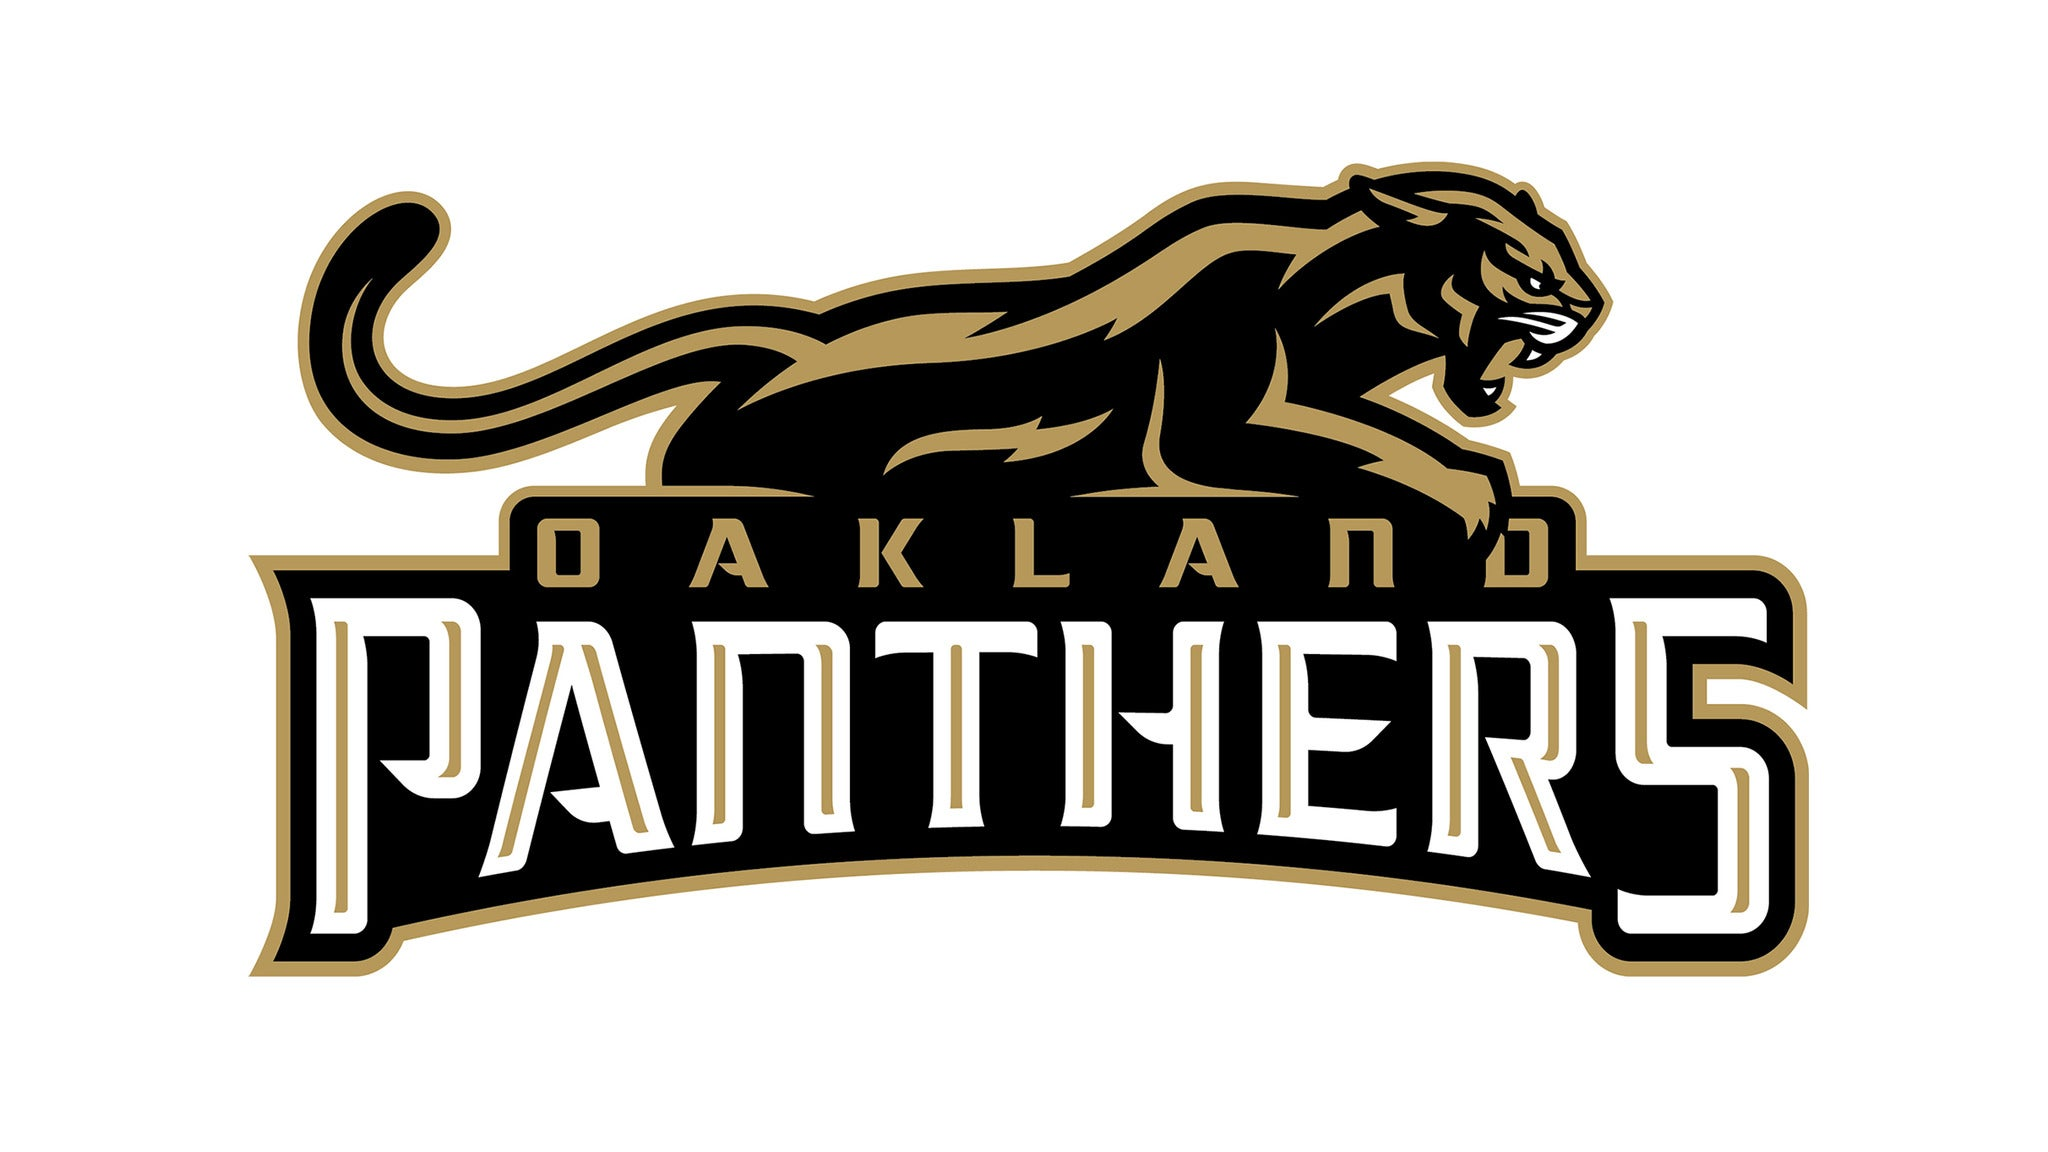 Oakland Panthers vs. Iowa Barnstormers at Oakland Arena